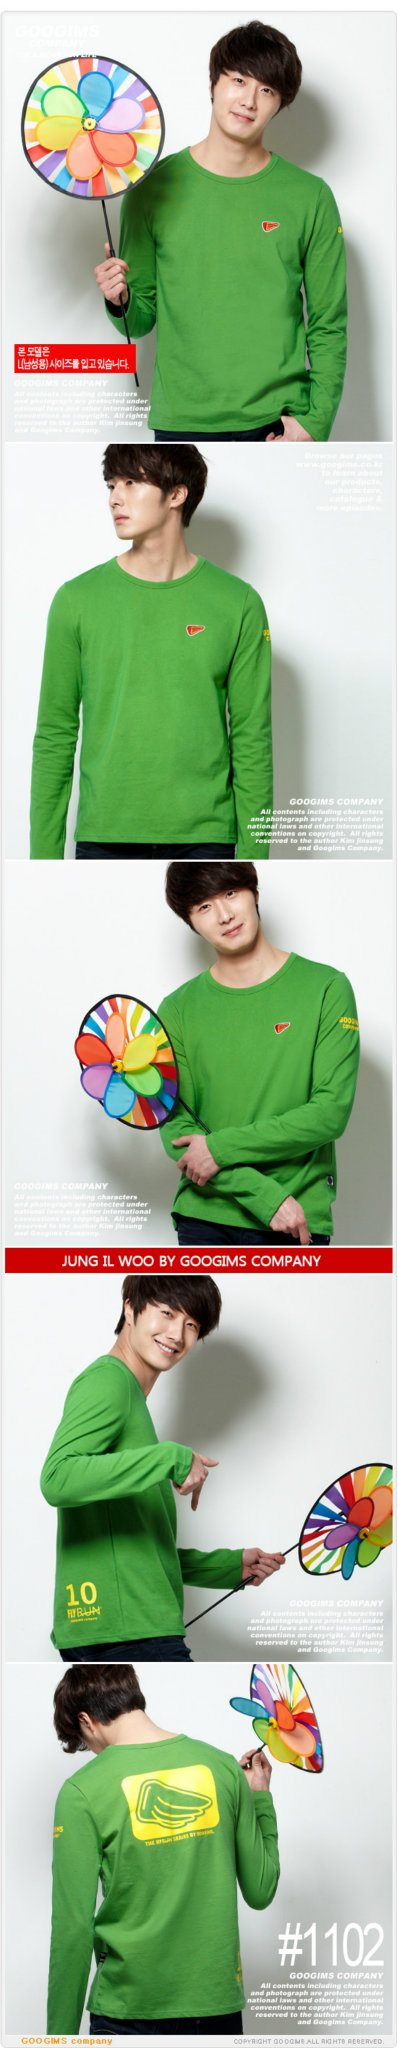 2011 10 Jung II-woo for Googims. Part 100004